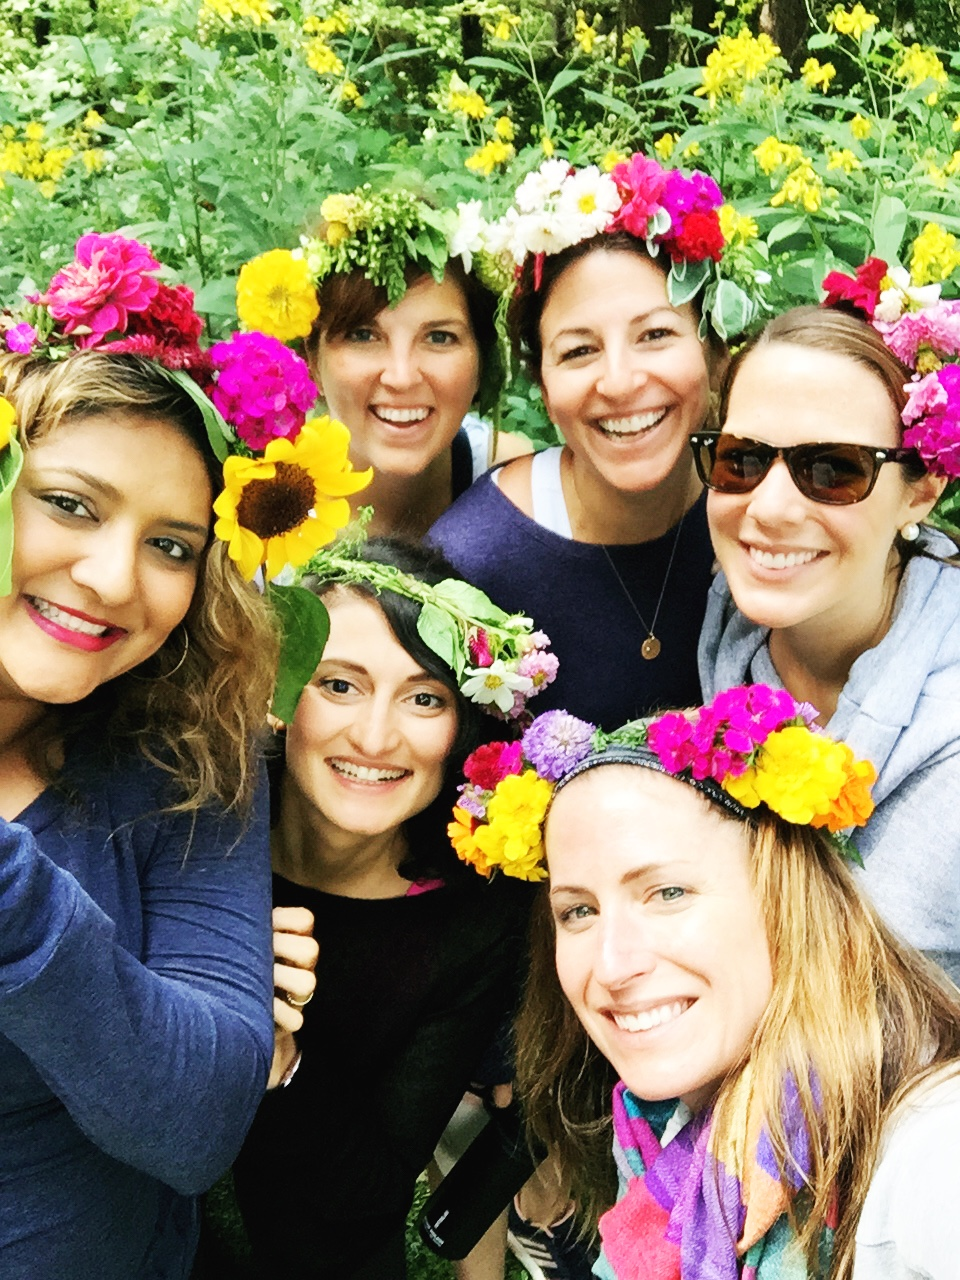 Flower crowns outdoor yoga spice acres farms cleveland ohio